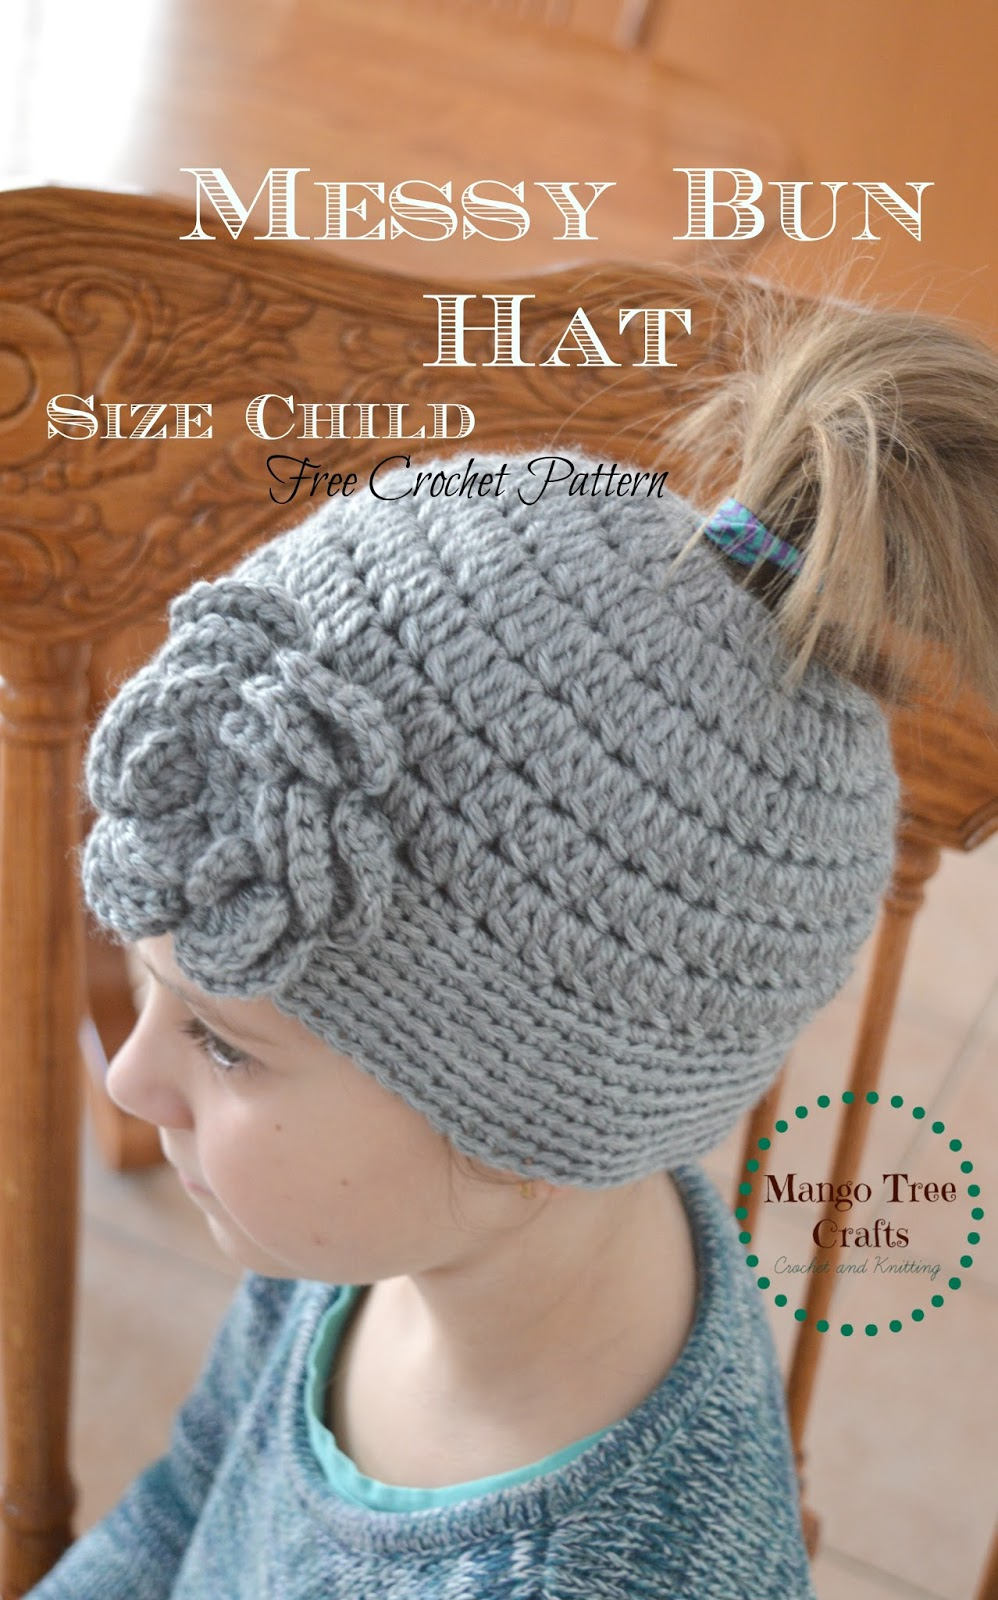 Mango tree crafts messy bun hat free crochet pattern in 3 sizes messy bun hat free crochet pattern in 3 sizes bankloansurffo Images